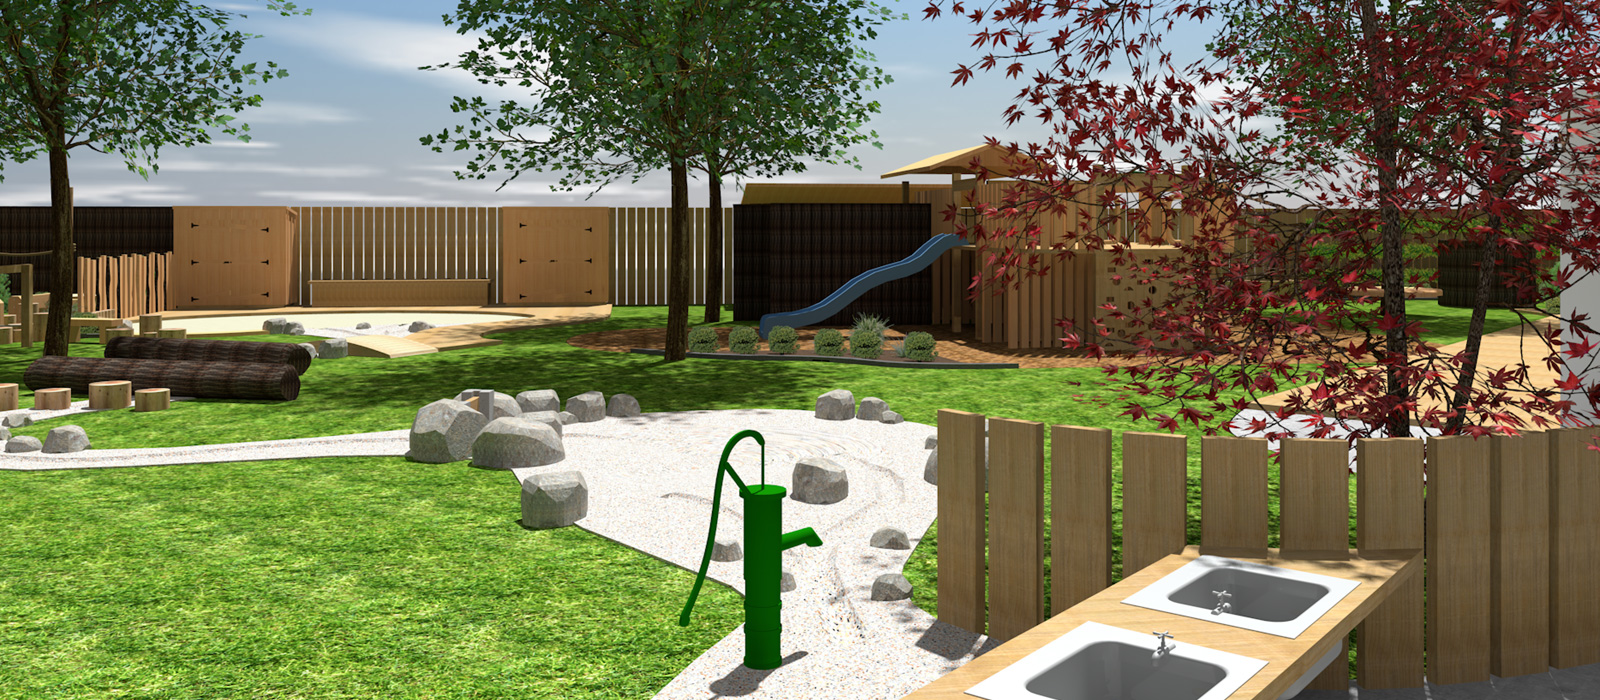 Playscape Design